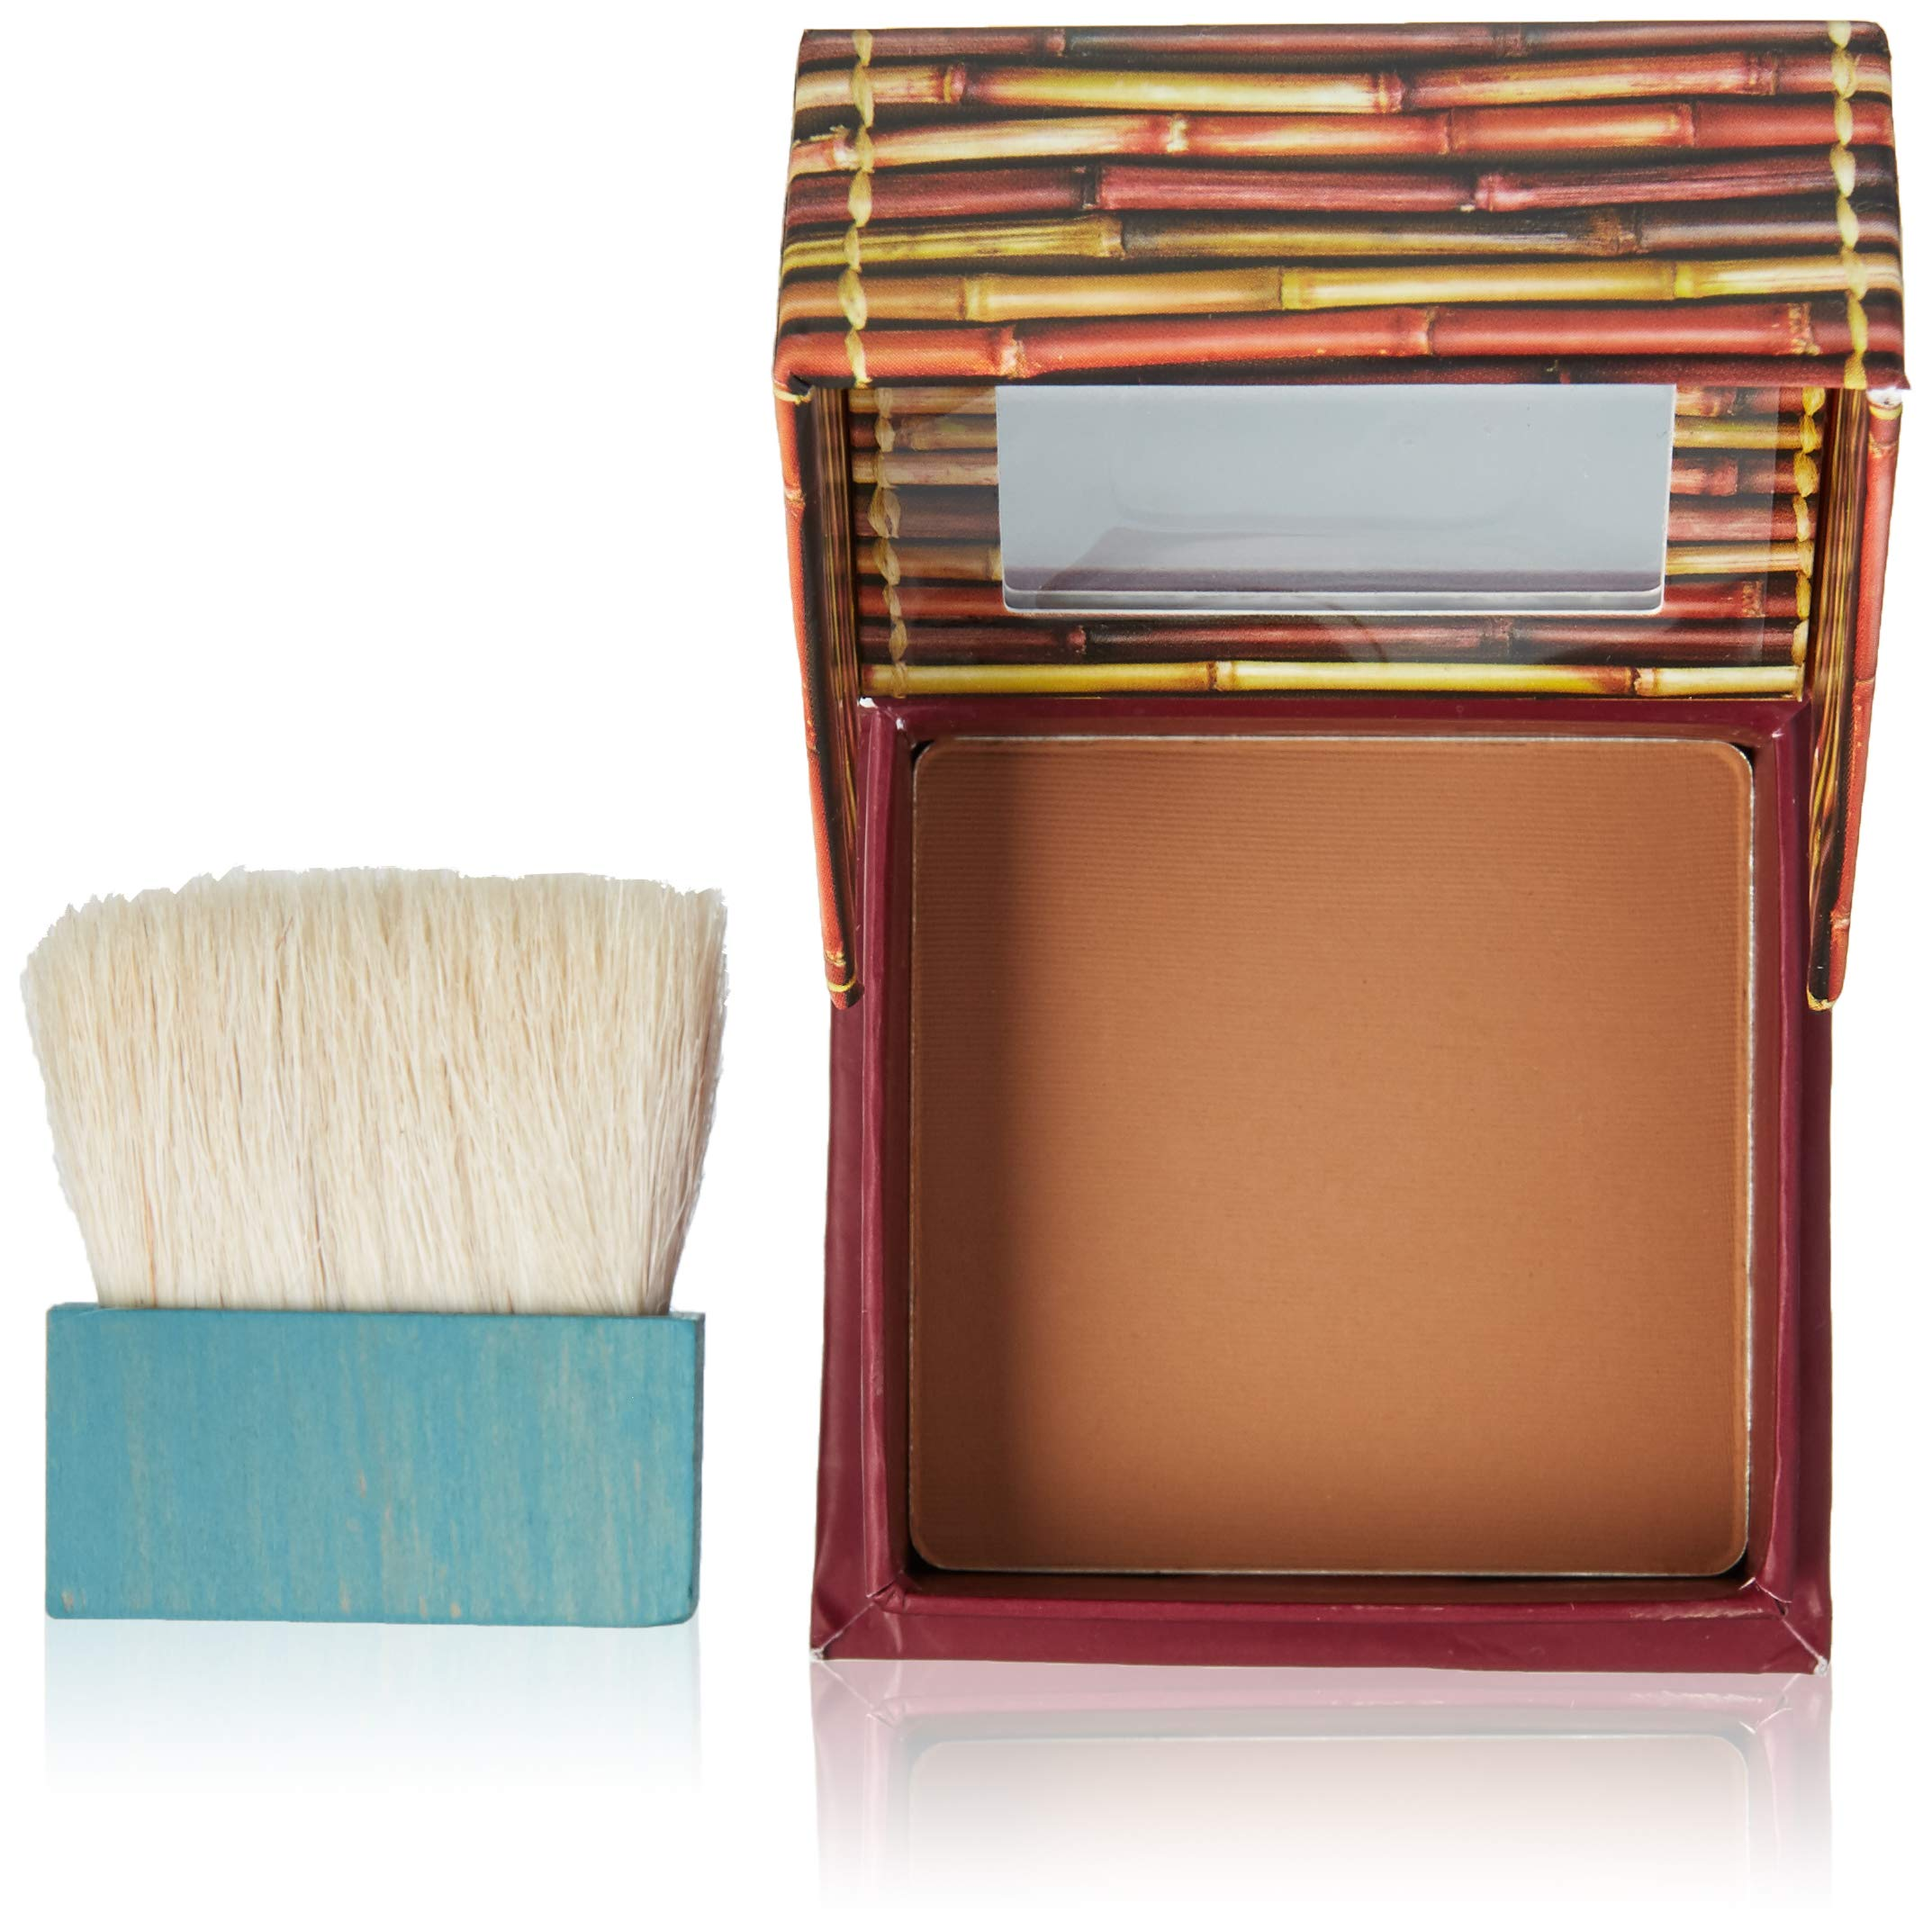 Benefit Hoola Box O' Powder (8g/0.28oz) by CoCo-Shop